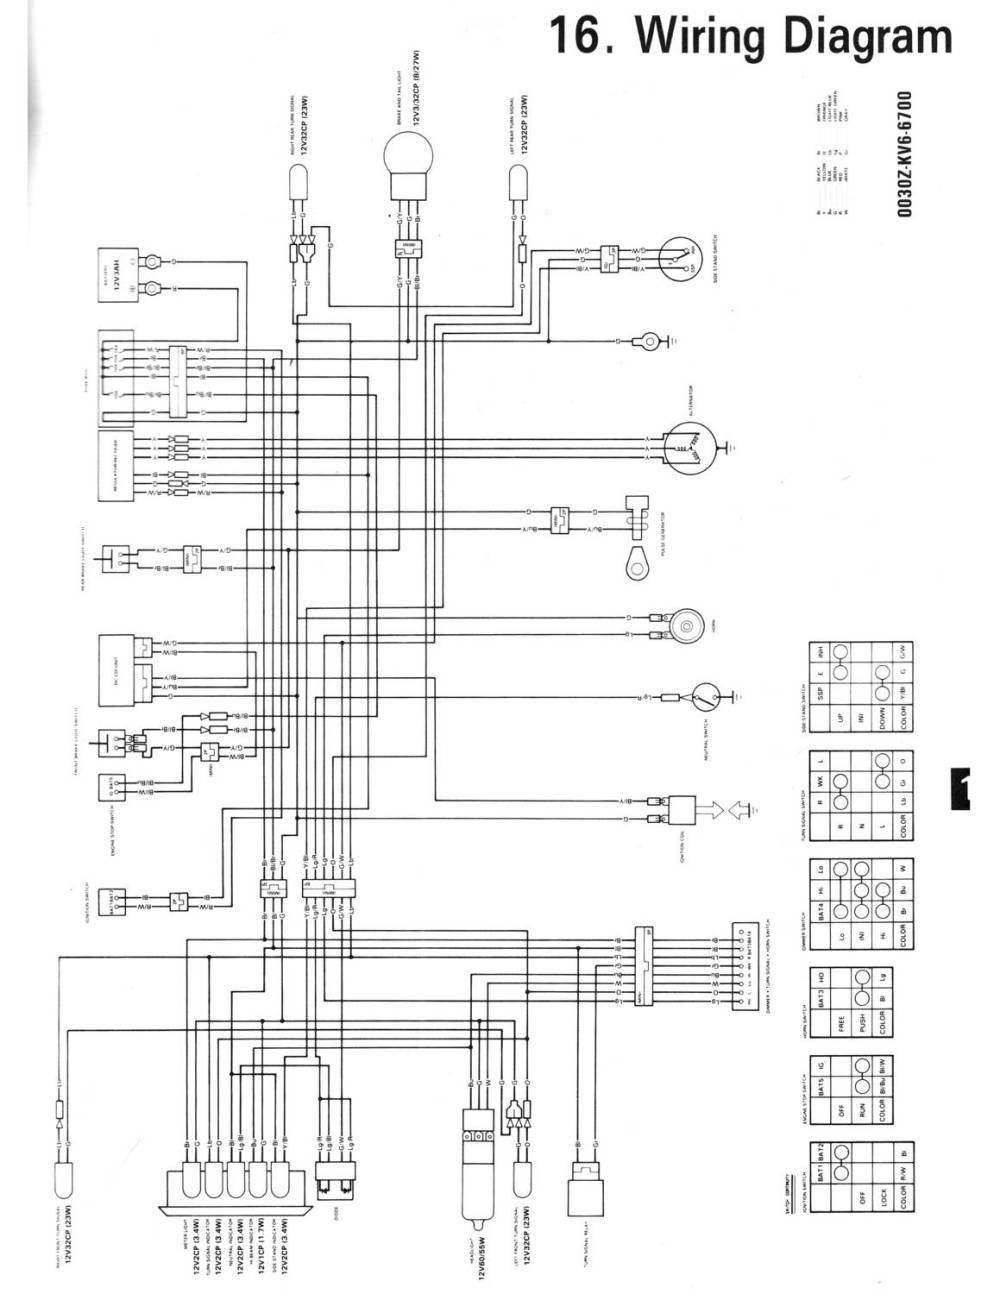 medium resolution of honda reflex wiring diagram honda free engine image for honda tlr 200 wiring diagram homemade tlr200